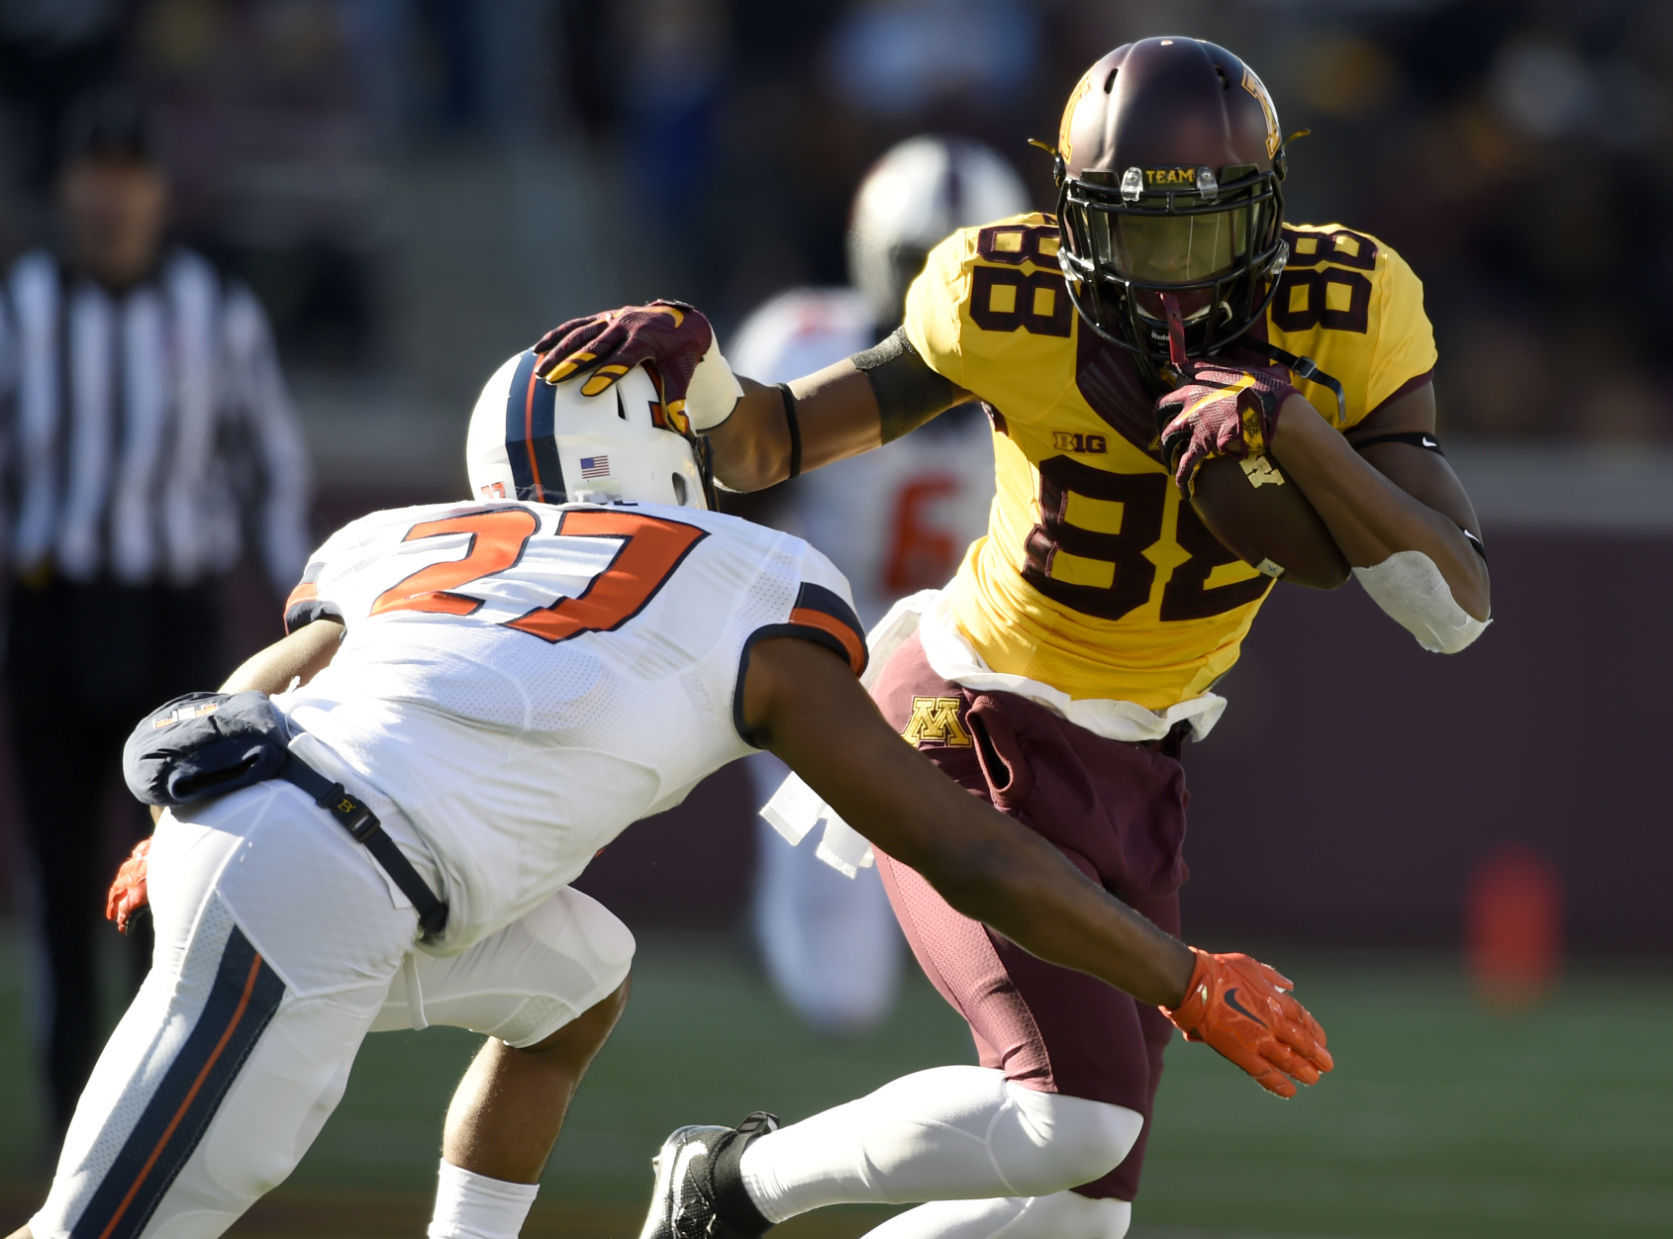 This Minnesota walk-on's scholarship surprise is awesome